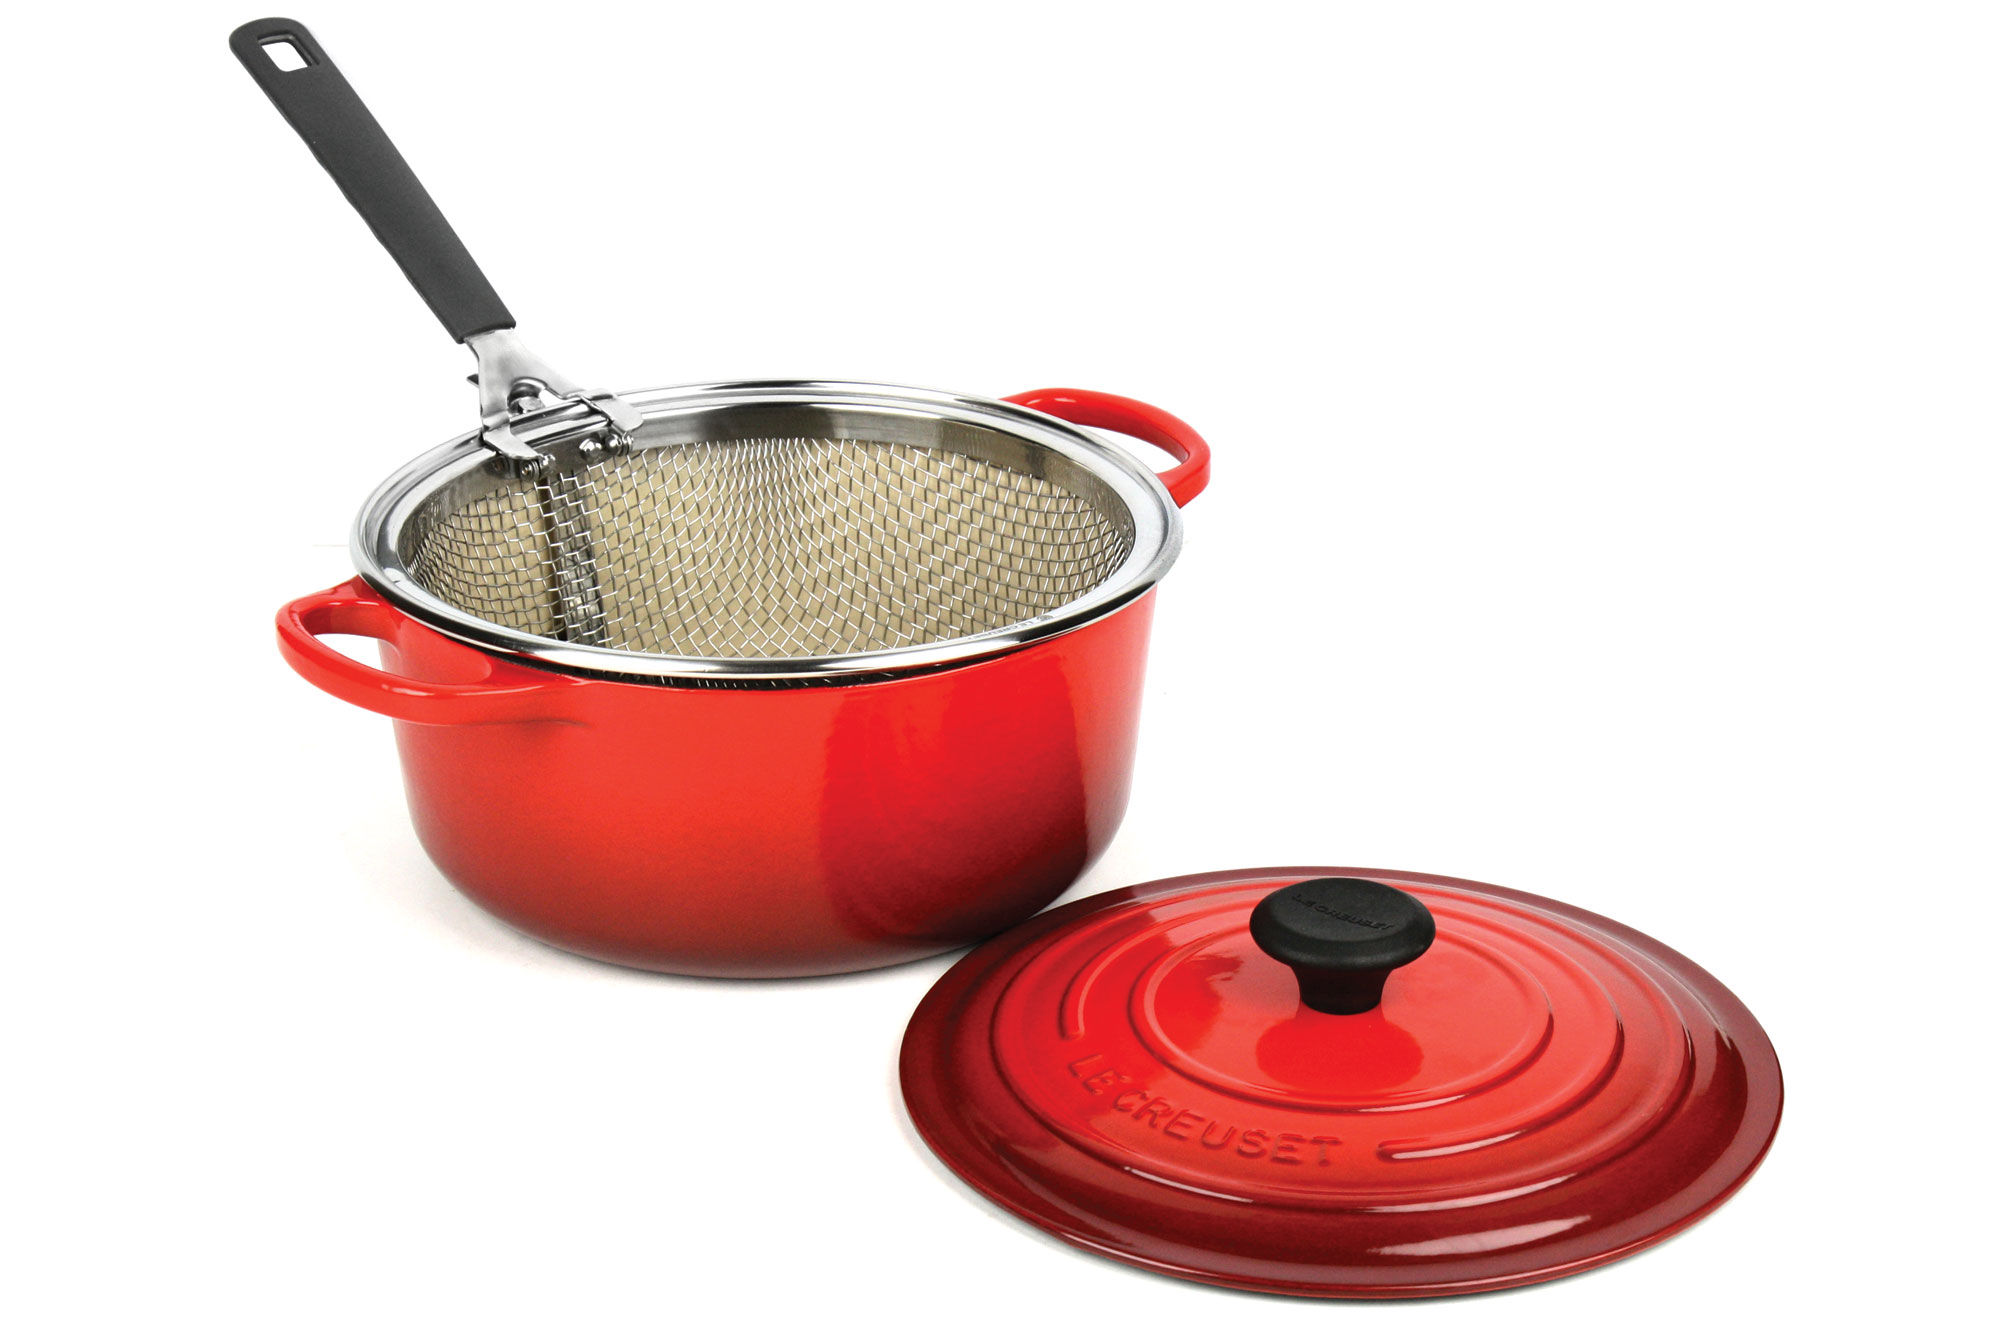 Le Creuset Signature Cast Iron Round Dutch Oven With Bonus